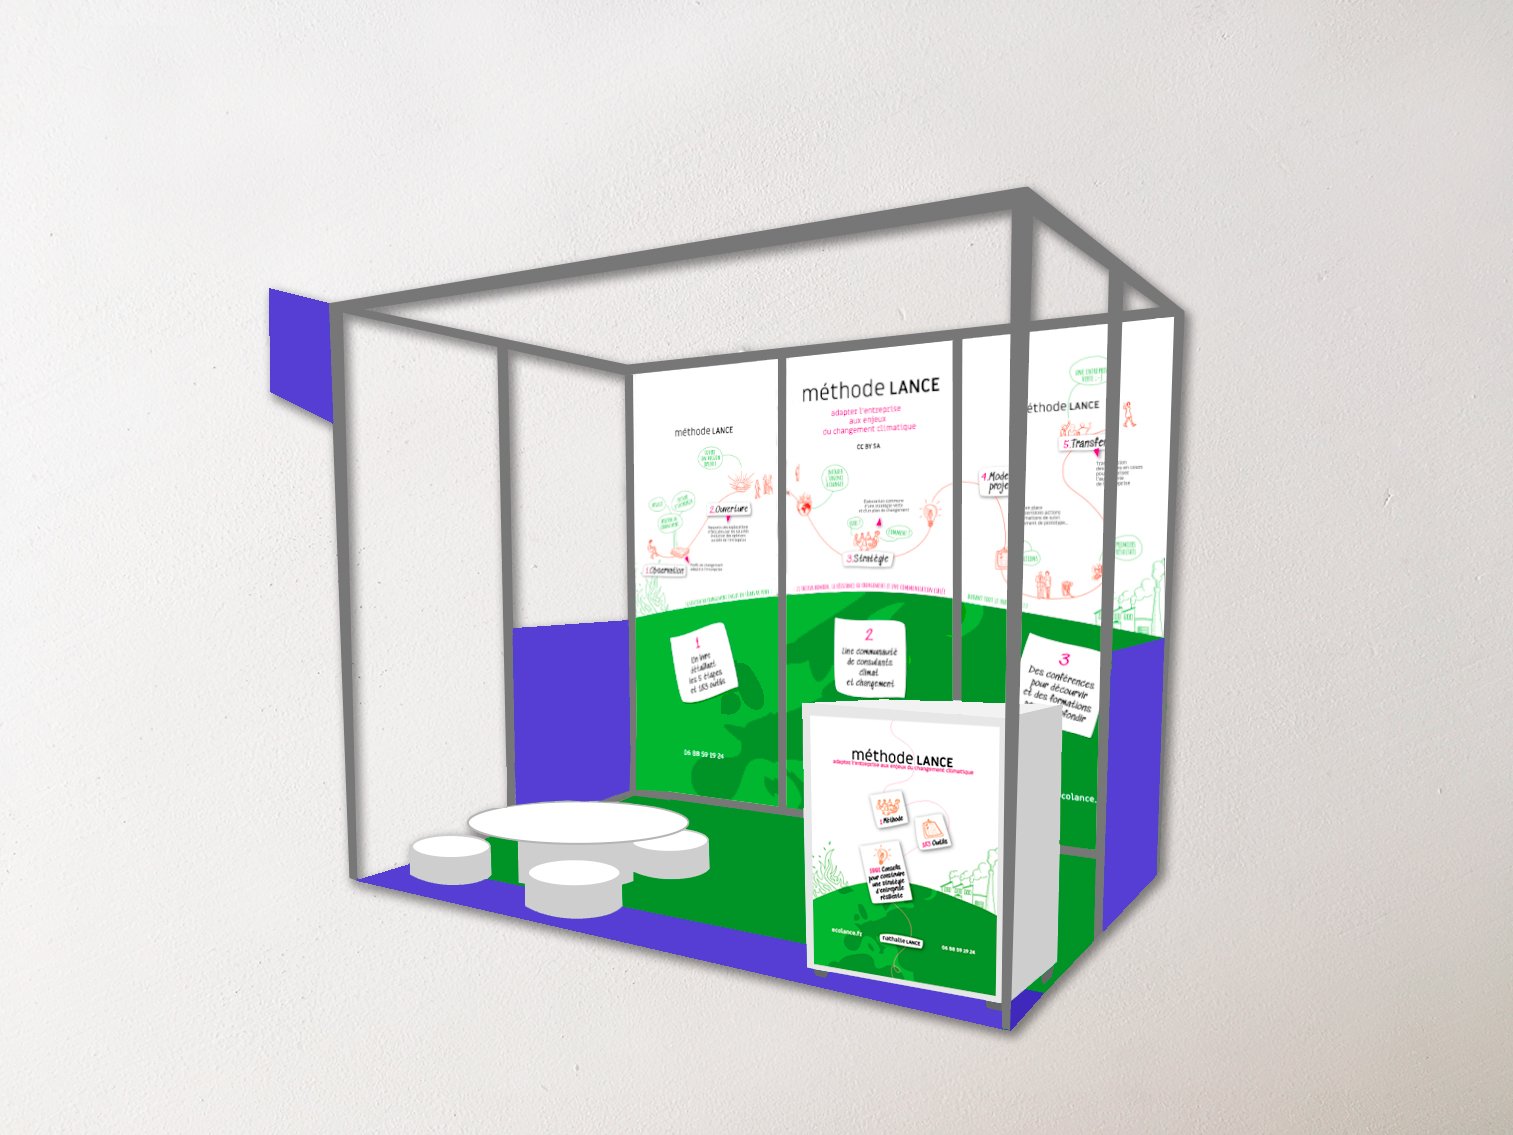 Stand ecolance